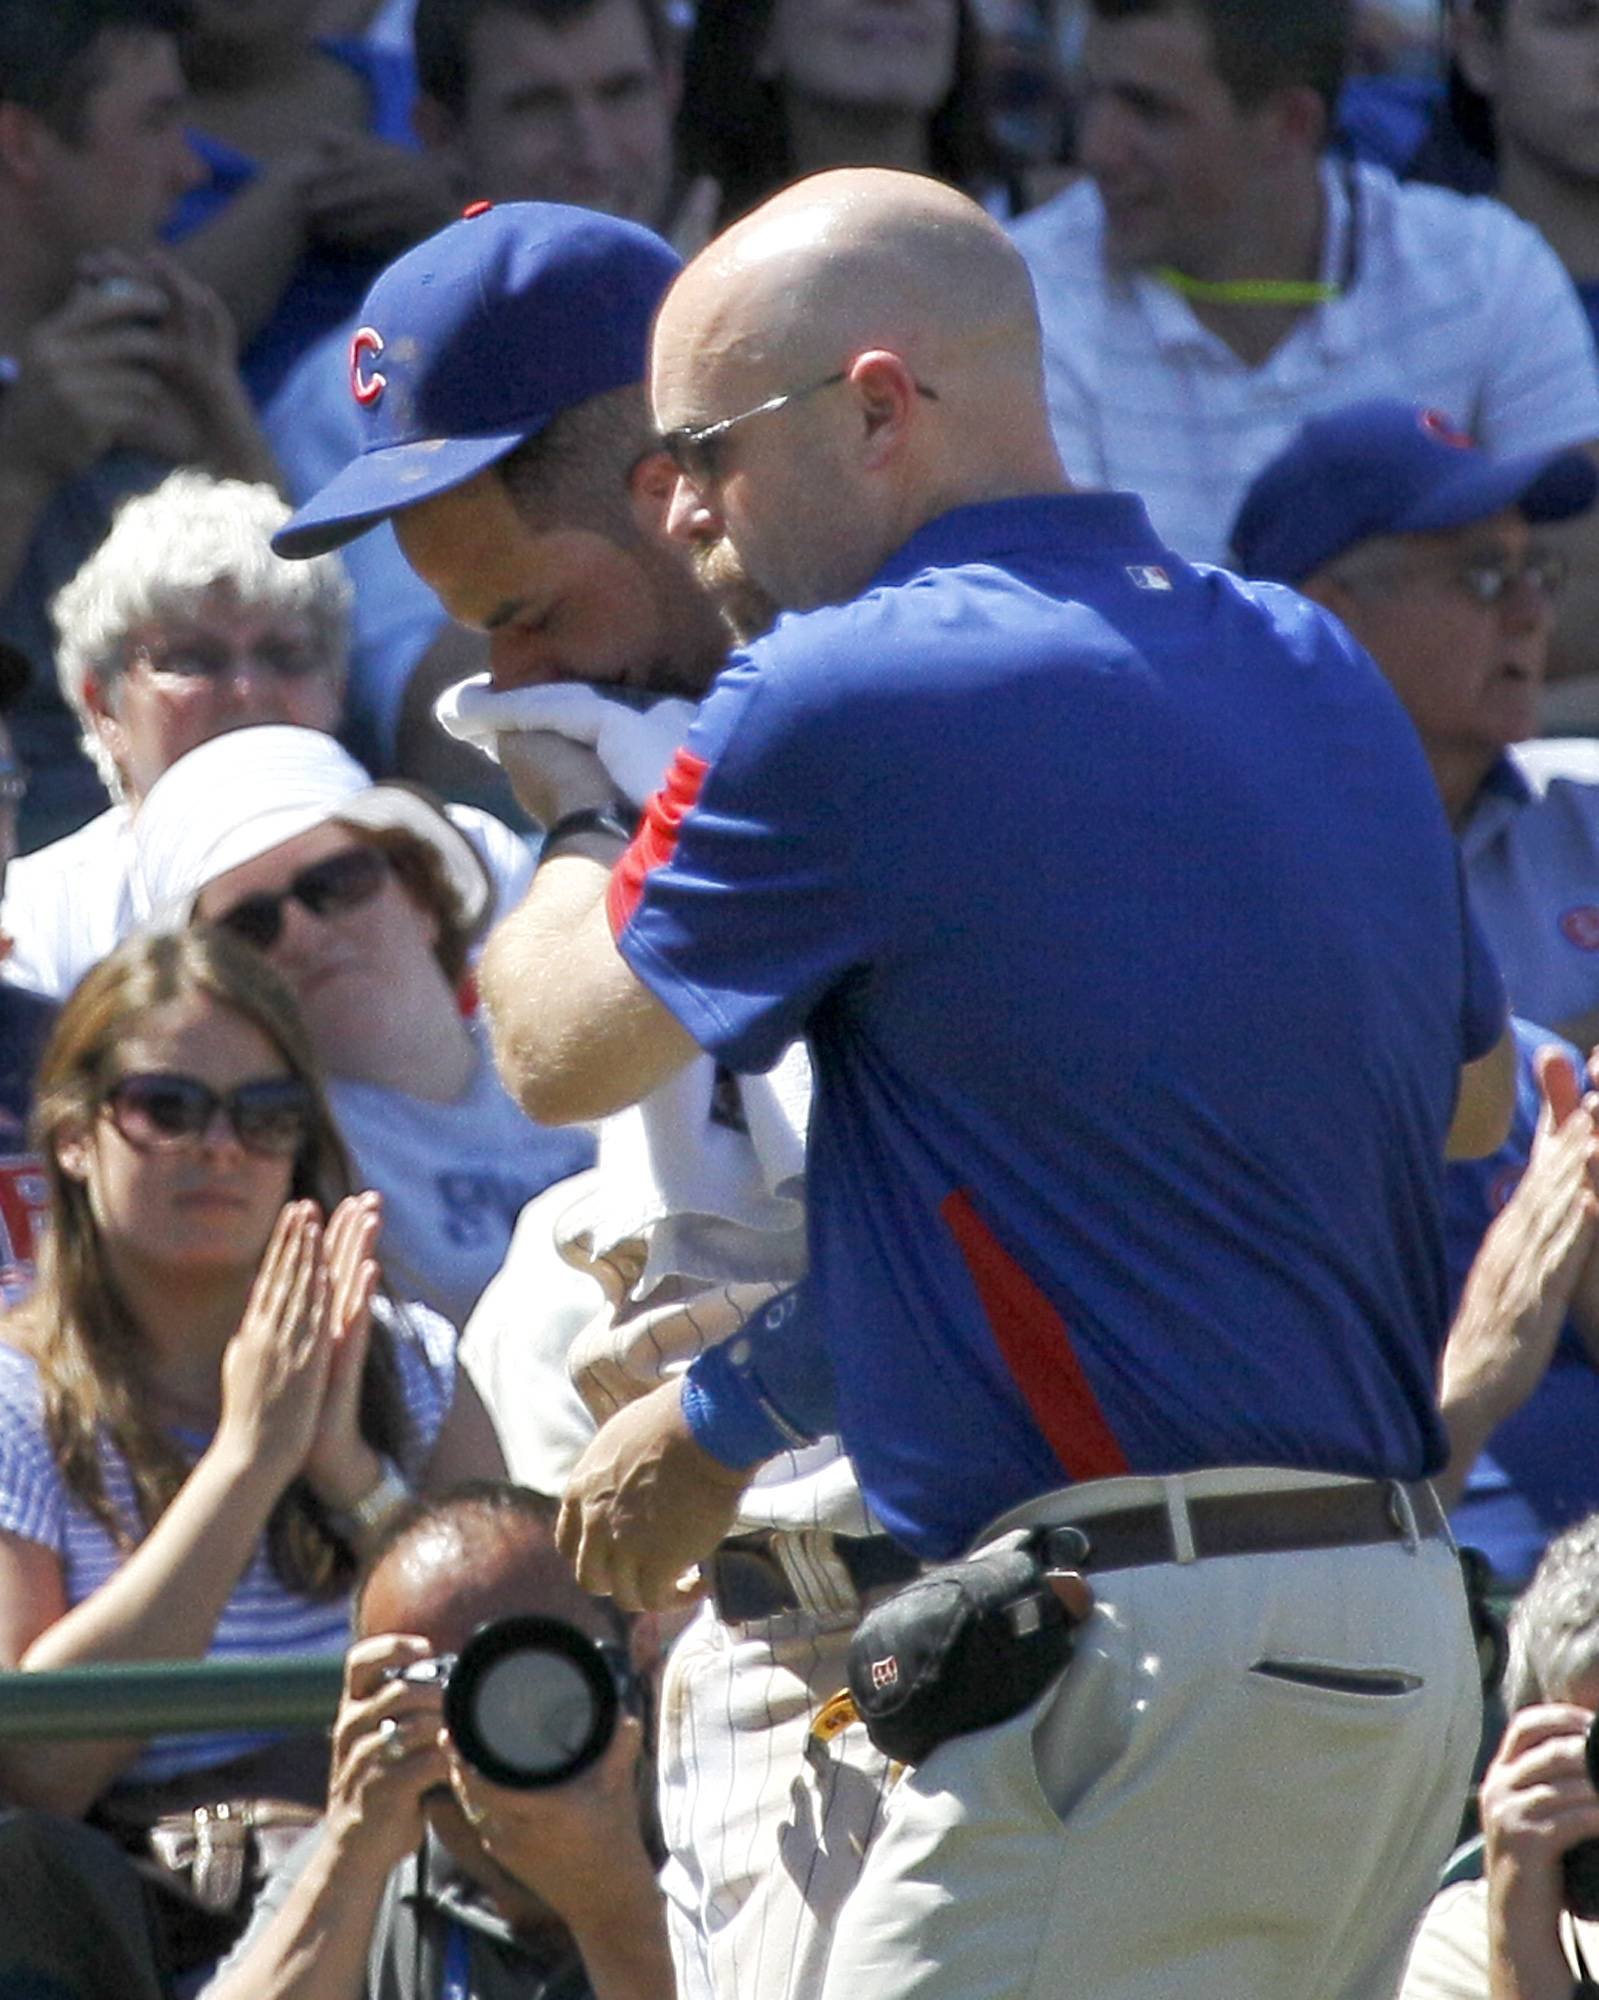 Cubs' Ramirez gets lacerated lip from groundball